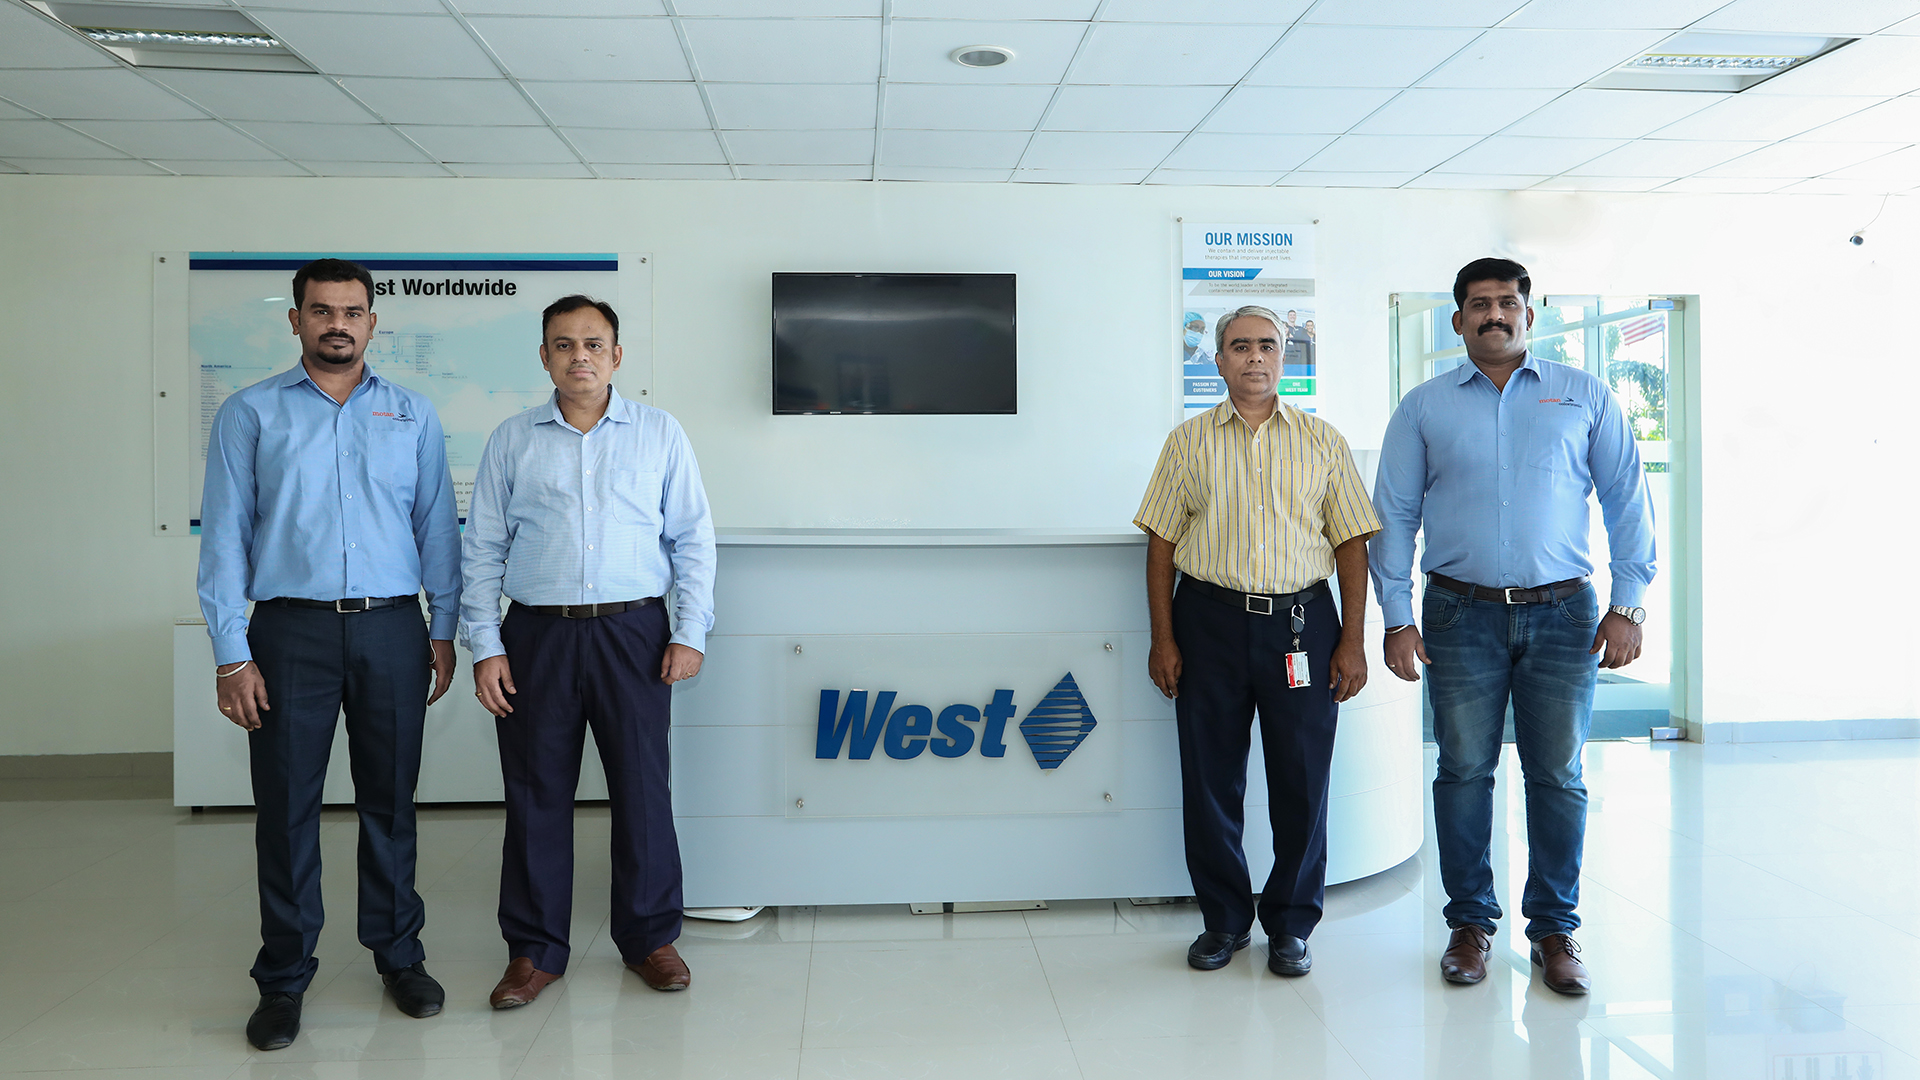 v.l.n.r. G Anand, Sales Engineer, mo-co India, N Ganesh, Head of Manufacturing, West Pharma, G Suresh, Operations Director, West Pharma, R Anandakumar, General Manager – Sales, mo-co India